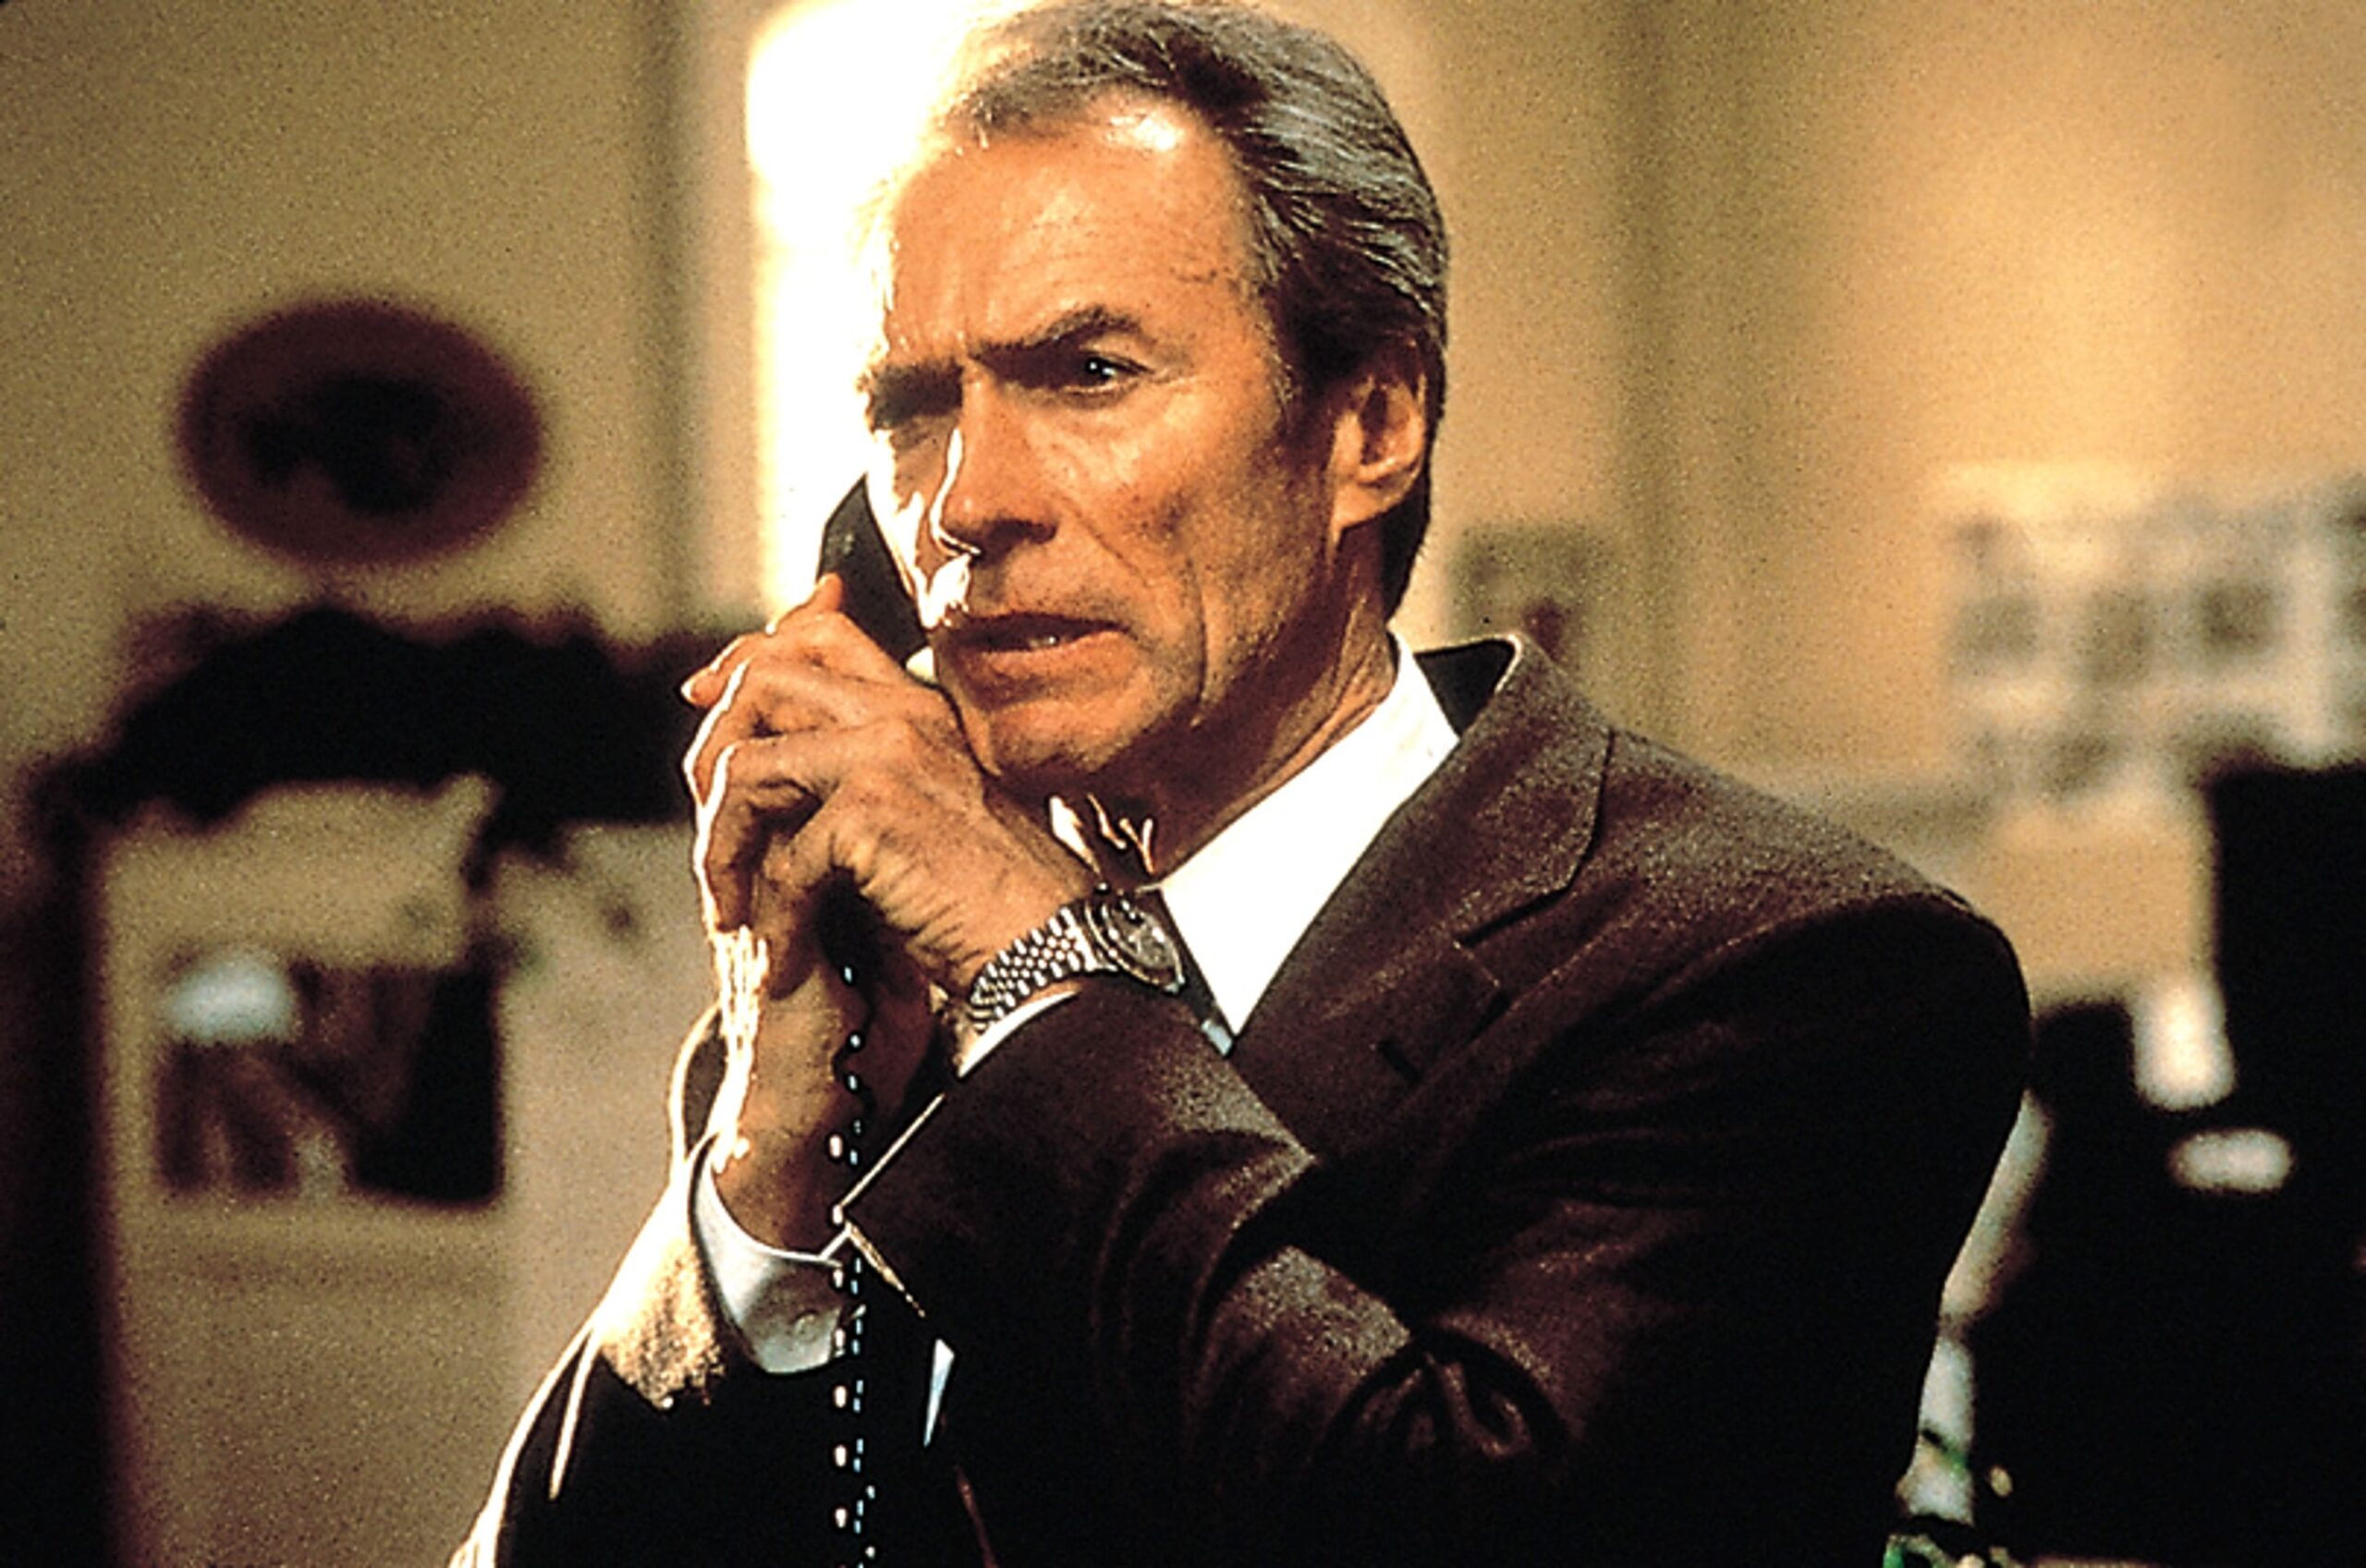 g35 20 Things You Didn't Know About Clint Eastwood